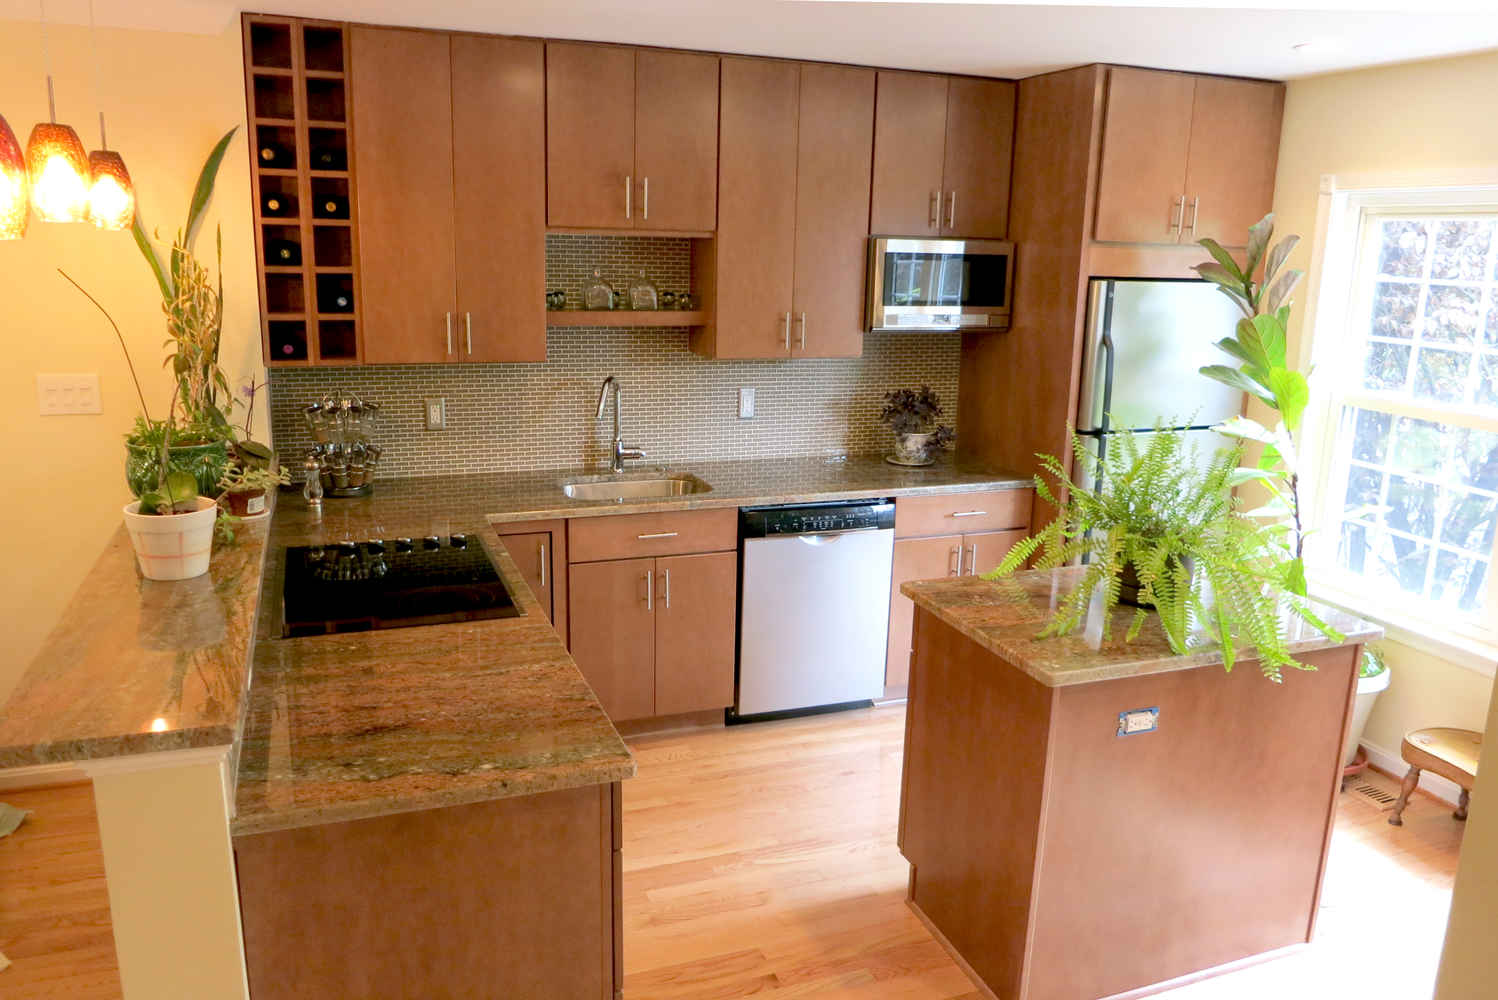 kitchen remodeling northern virginia kitchen remodeling northern virginia Kitchen remodeled by US Home Design Build